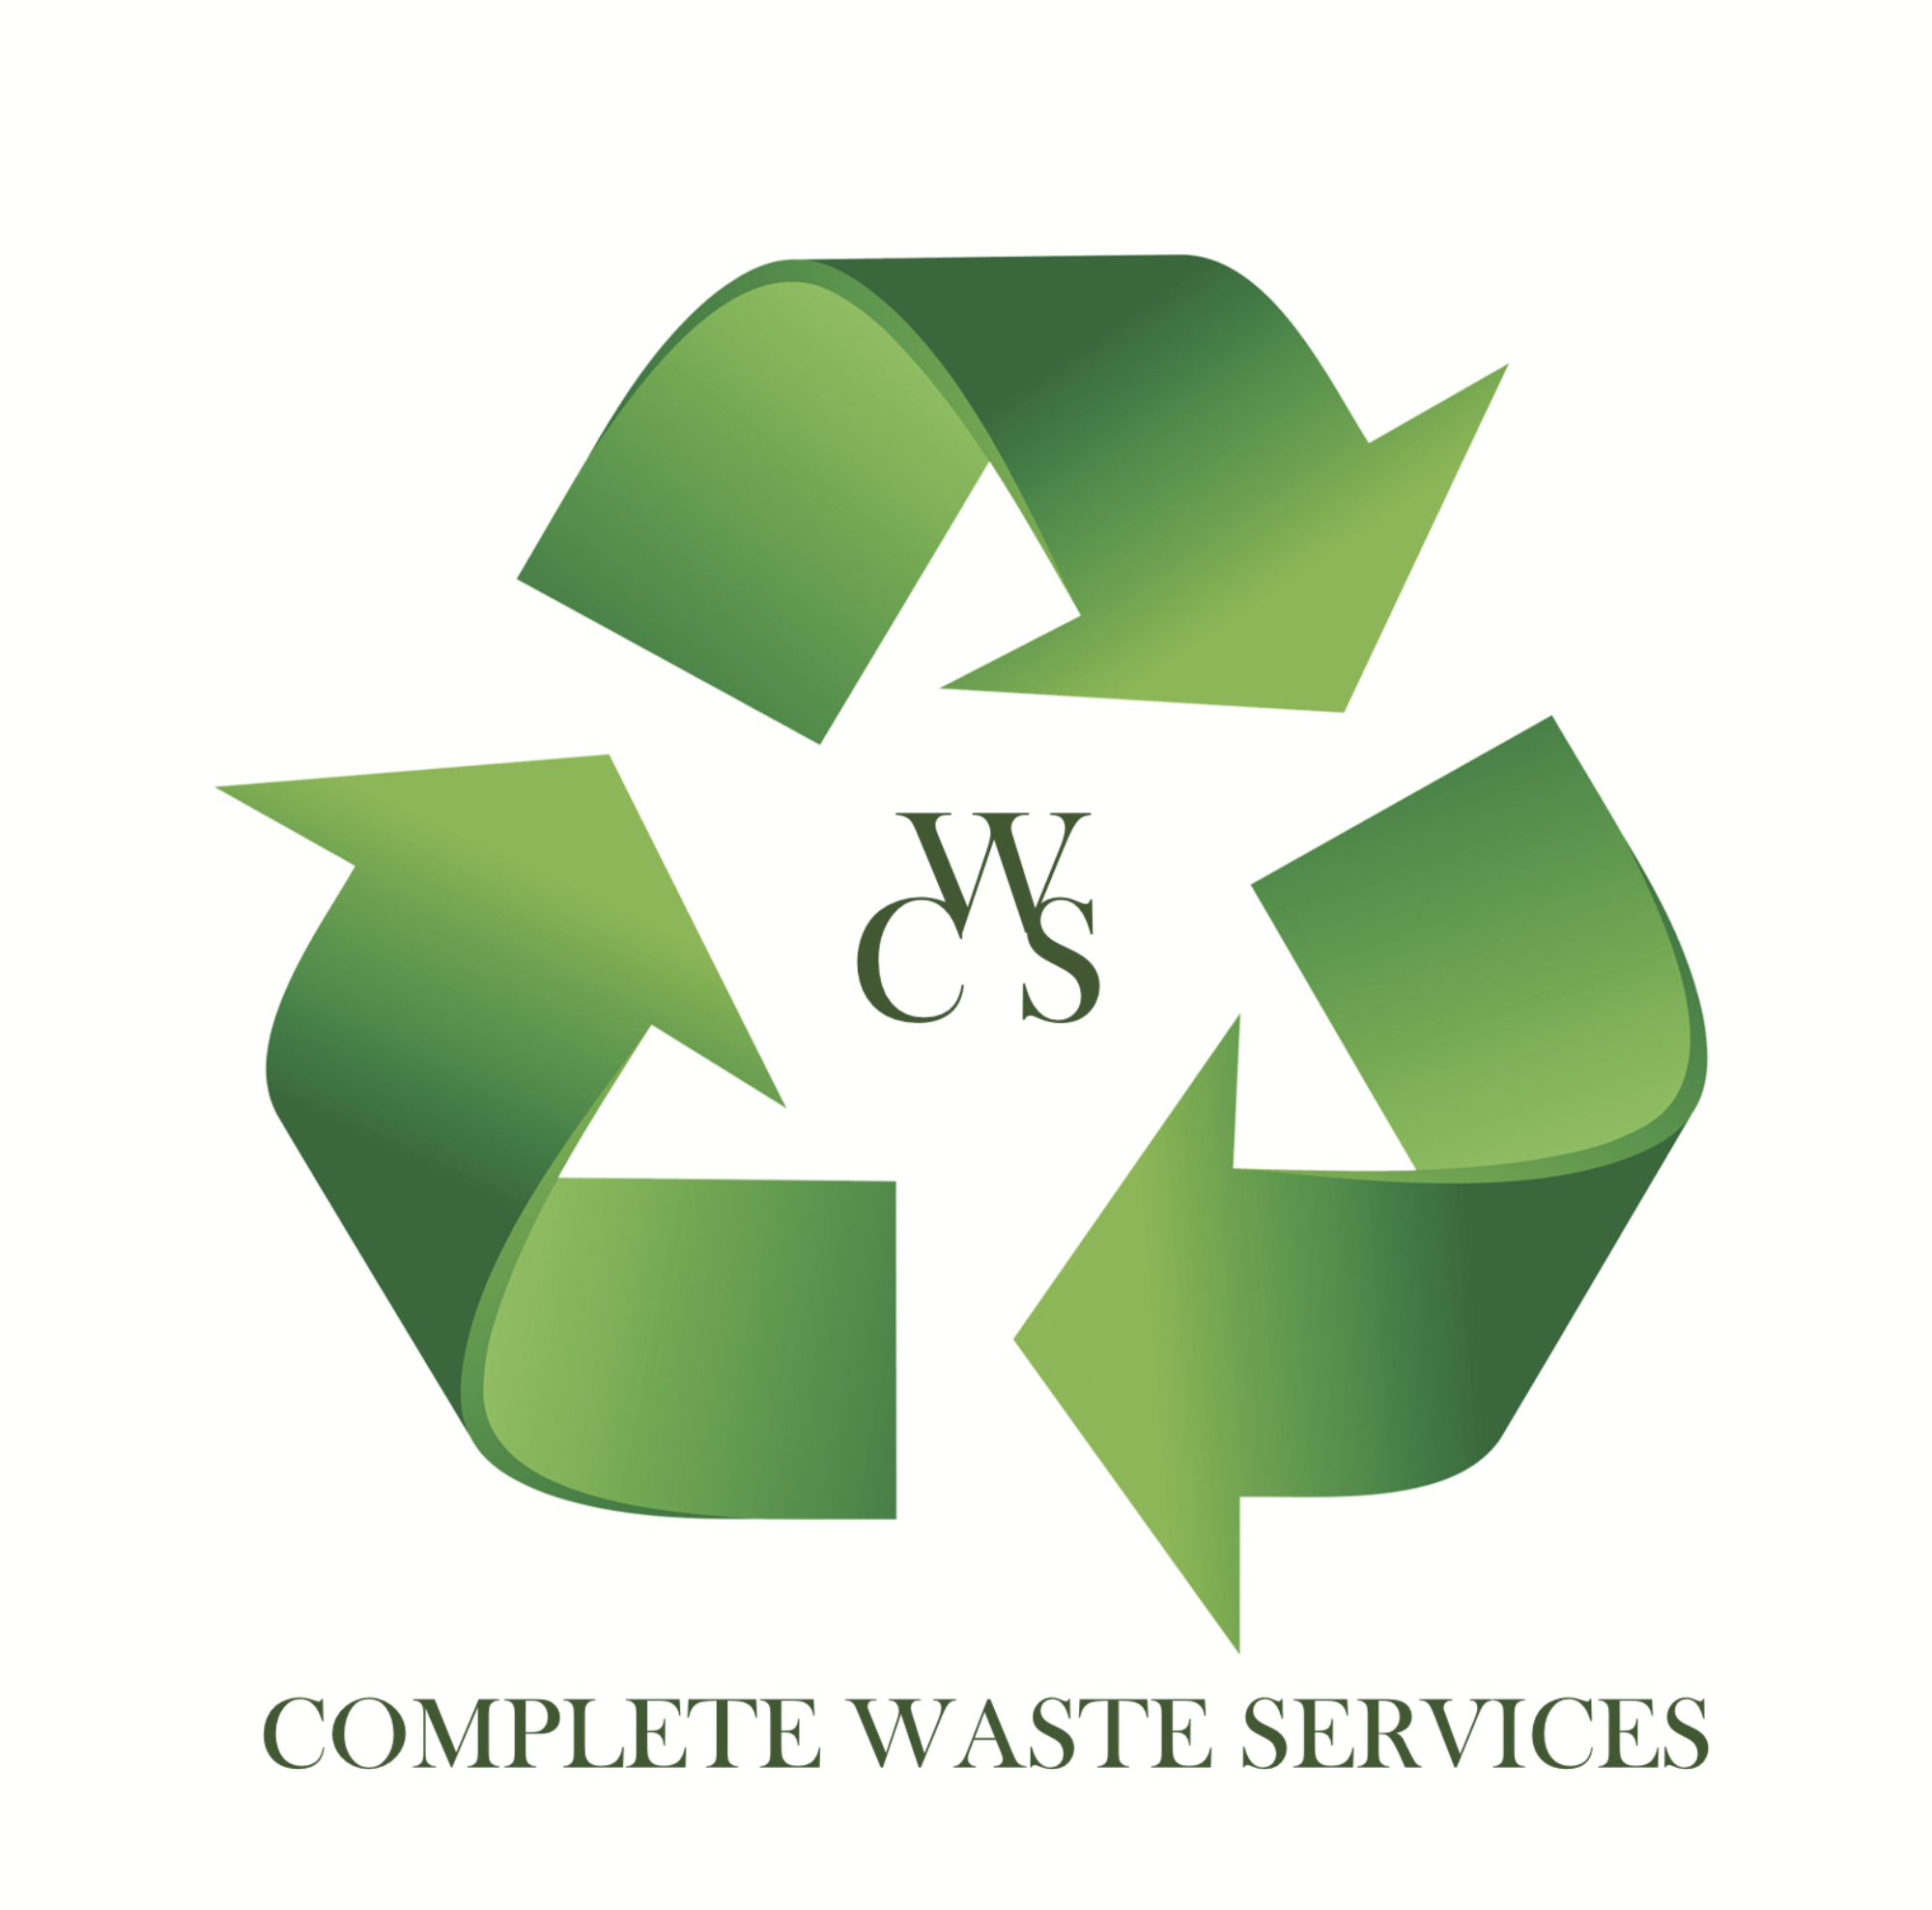 Complete Waste Services